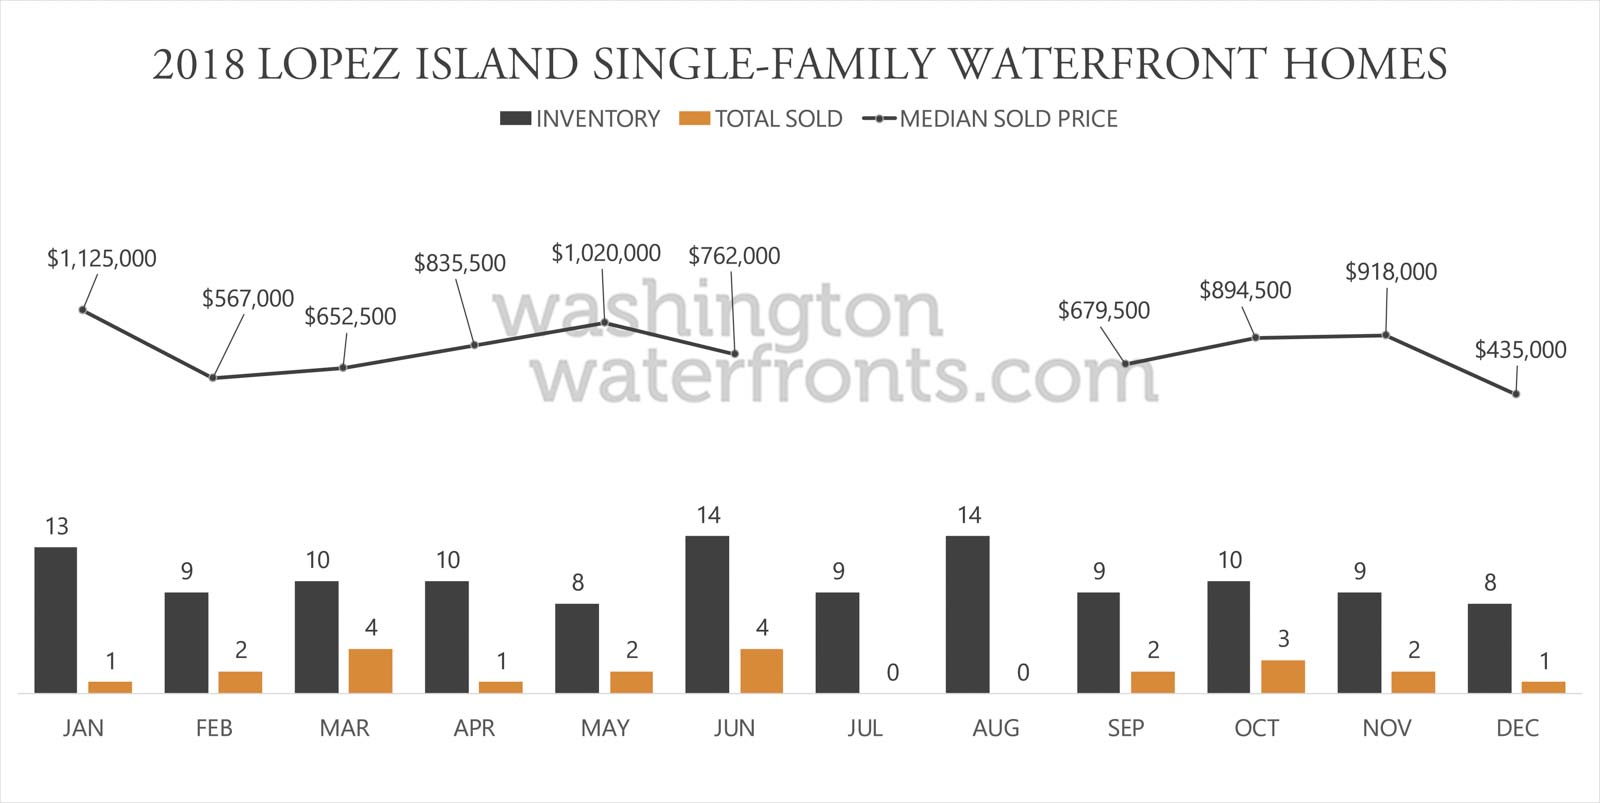 Lopez Island Waterfront Inventory